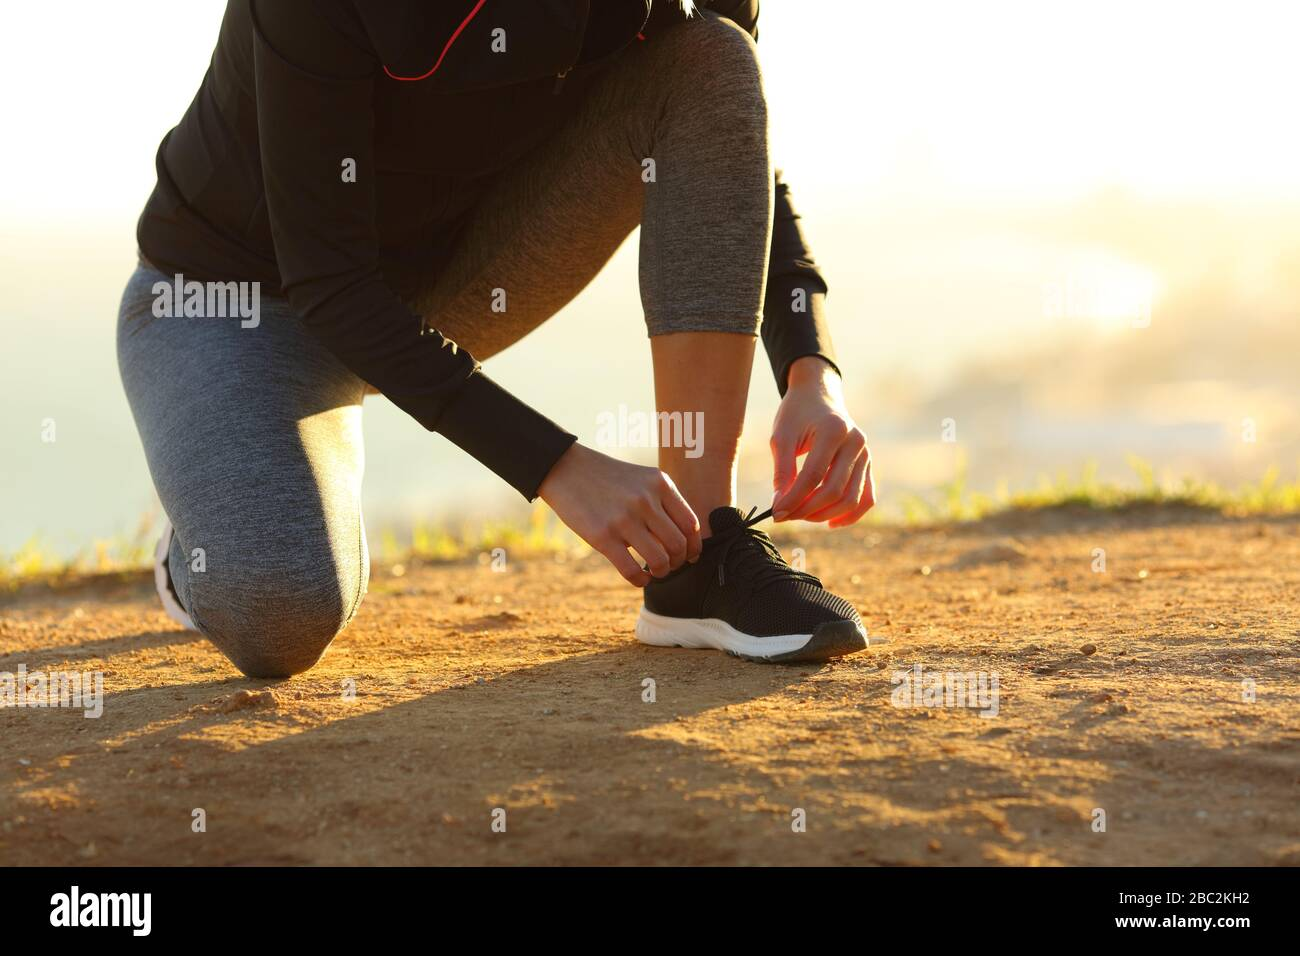 Runner woman hands tying shoelaces of shoes on the ground at sunset Stock Photo